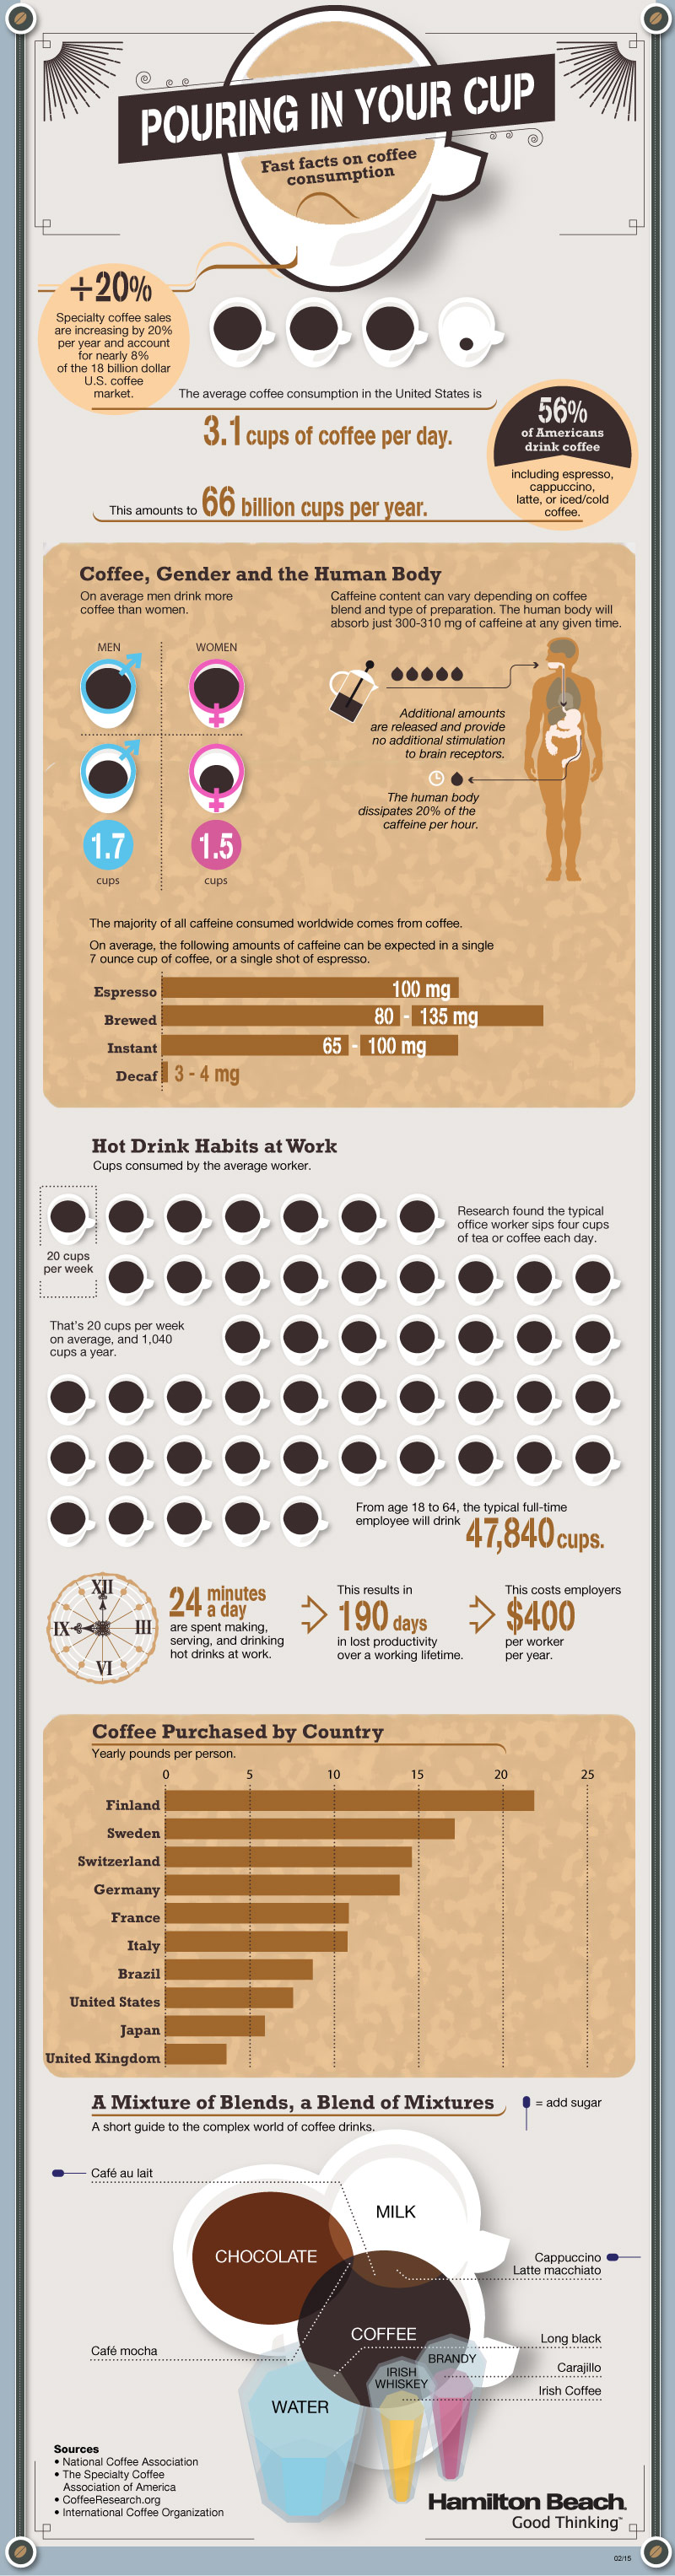 Fast Facts On Coffee Consumption #infographic